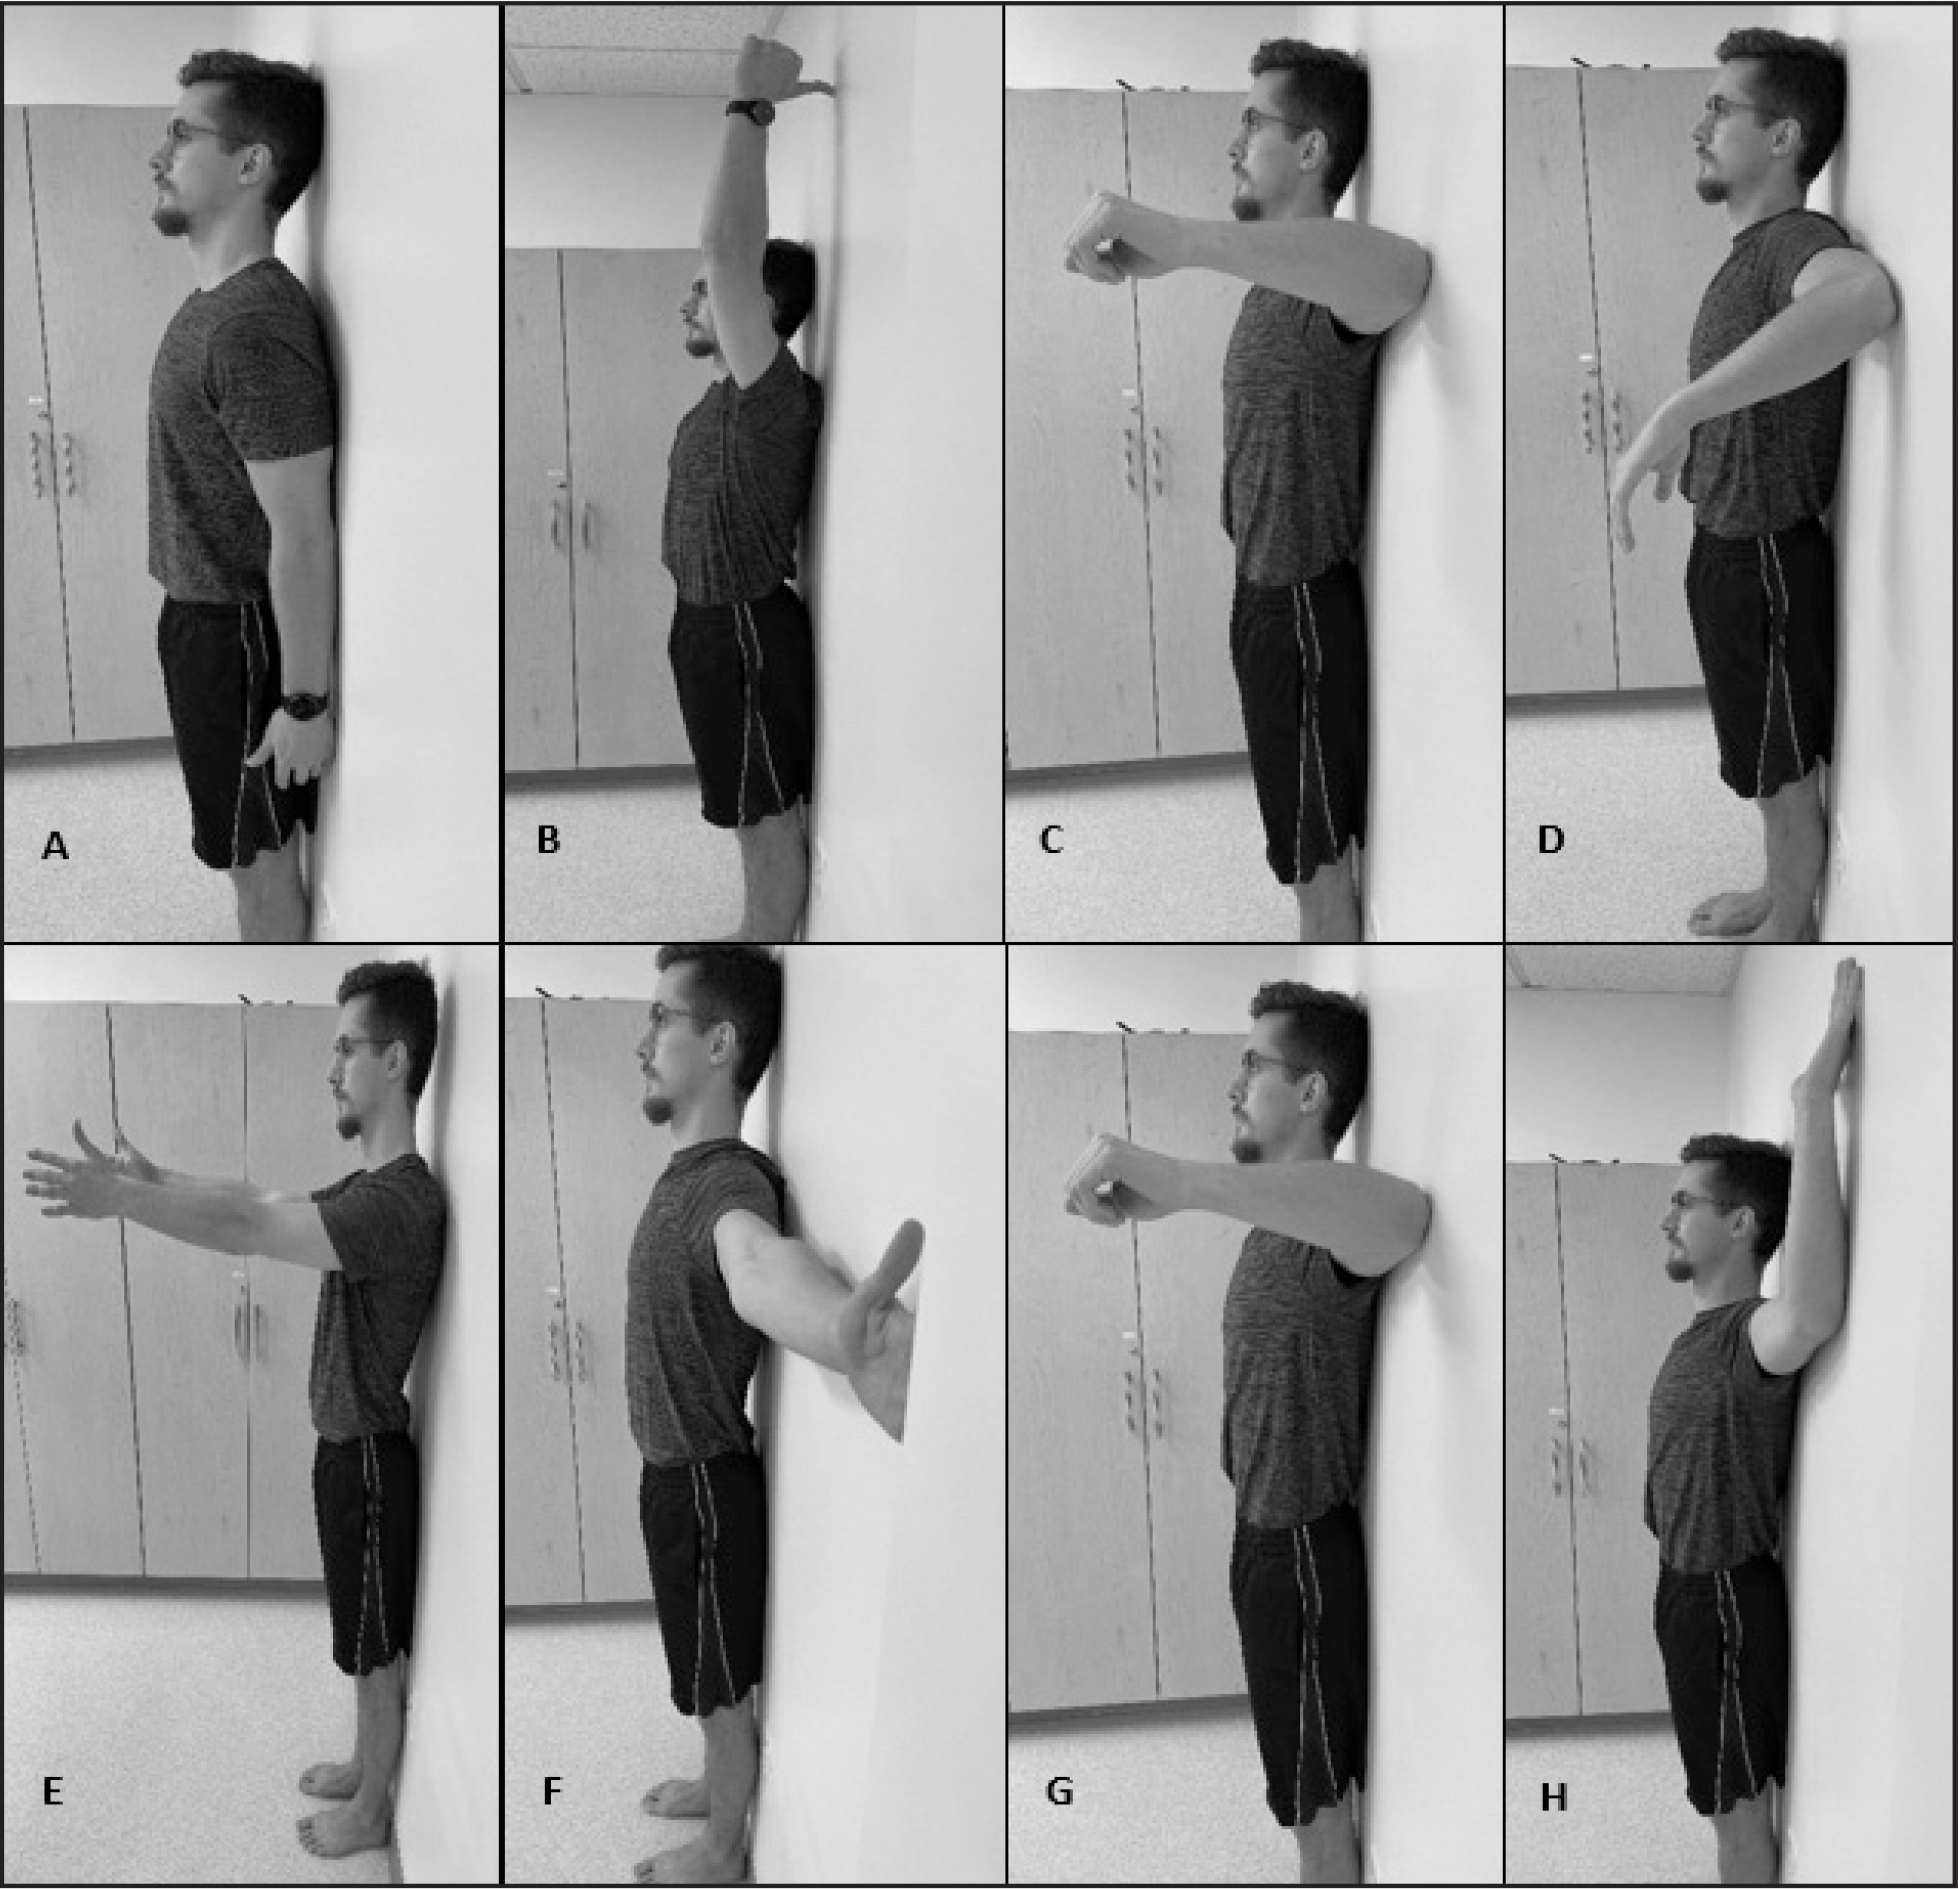 Shoulder Movements sub-test: (A) shoulder flexion–start position; (B) shoulder flexion–end position; (C) shoulder internal rotation–start position; (D) shoulder internal rotation–end position; (E) shoulder external rotation–start position; (F) shoulder external rotation–end position; (G) shoulder horizontal abduction–start position; and (H) shoulder horizontal abduction–end position.